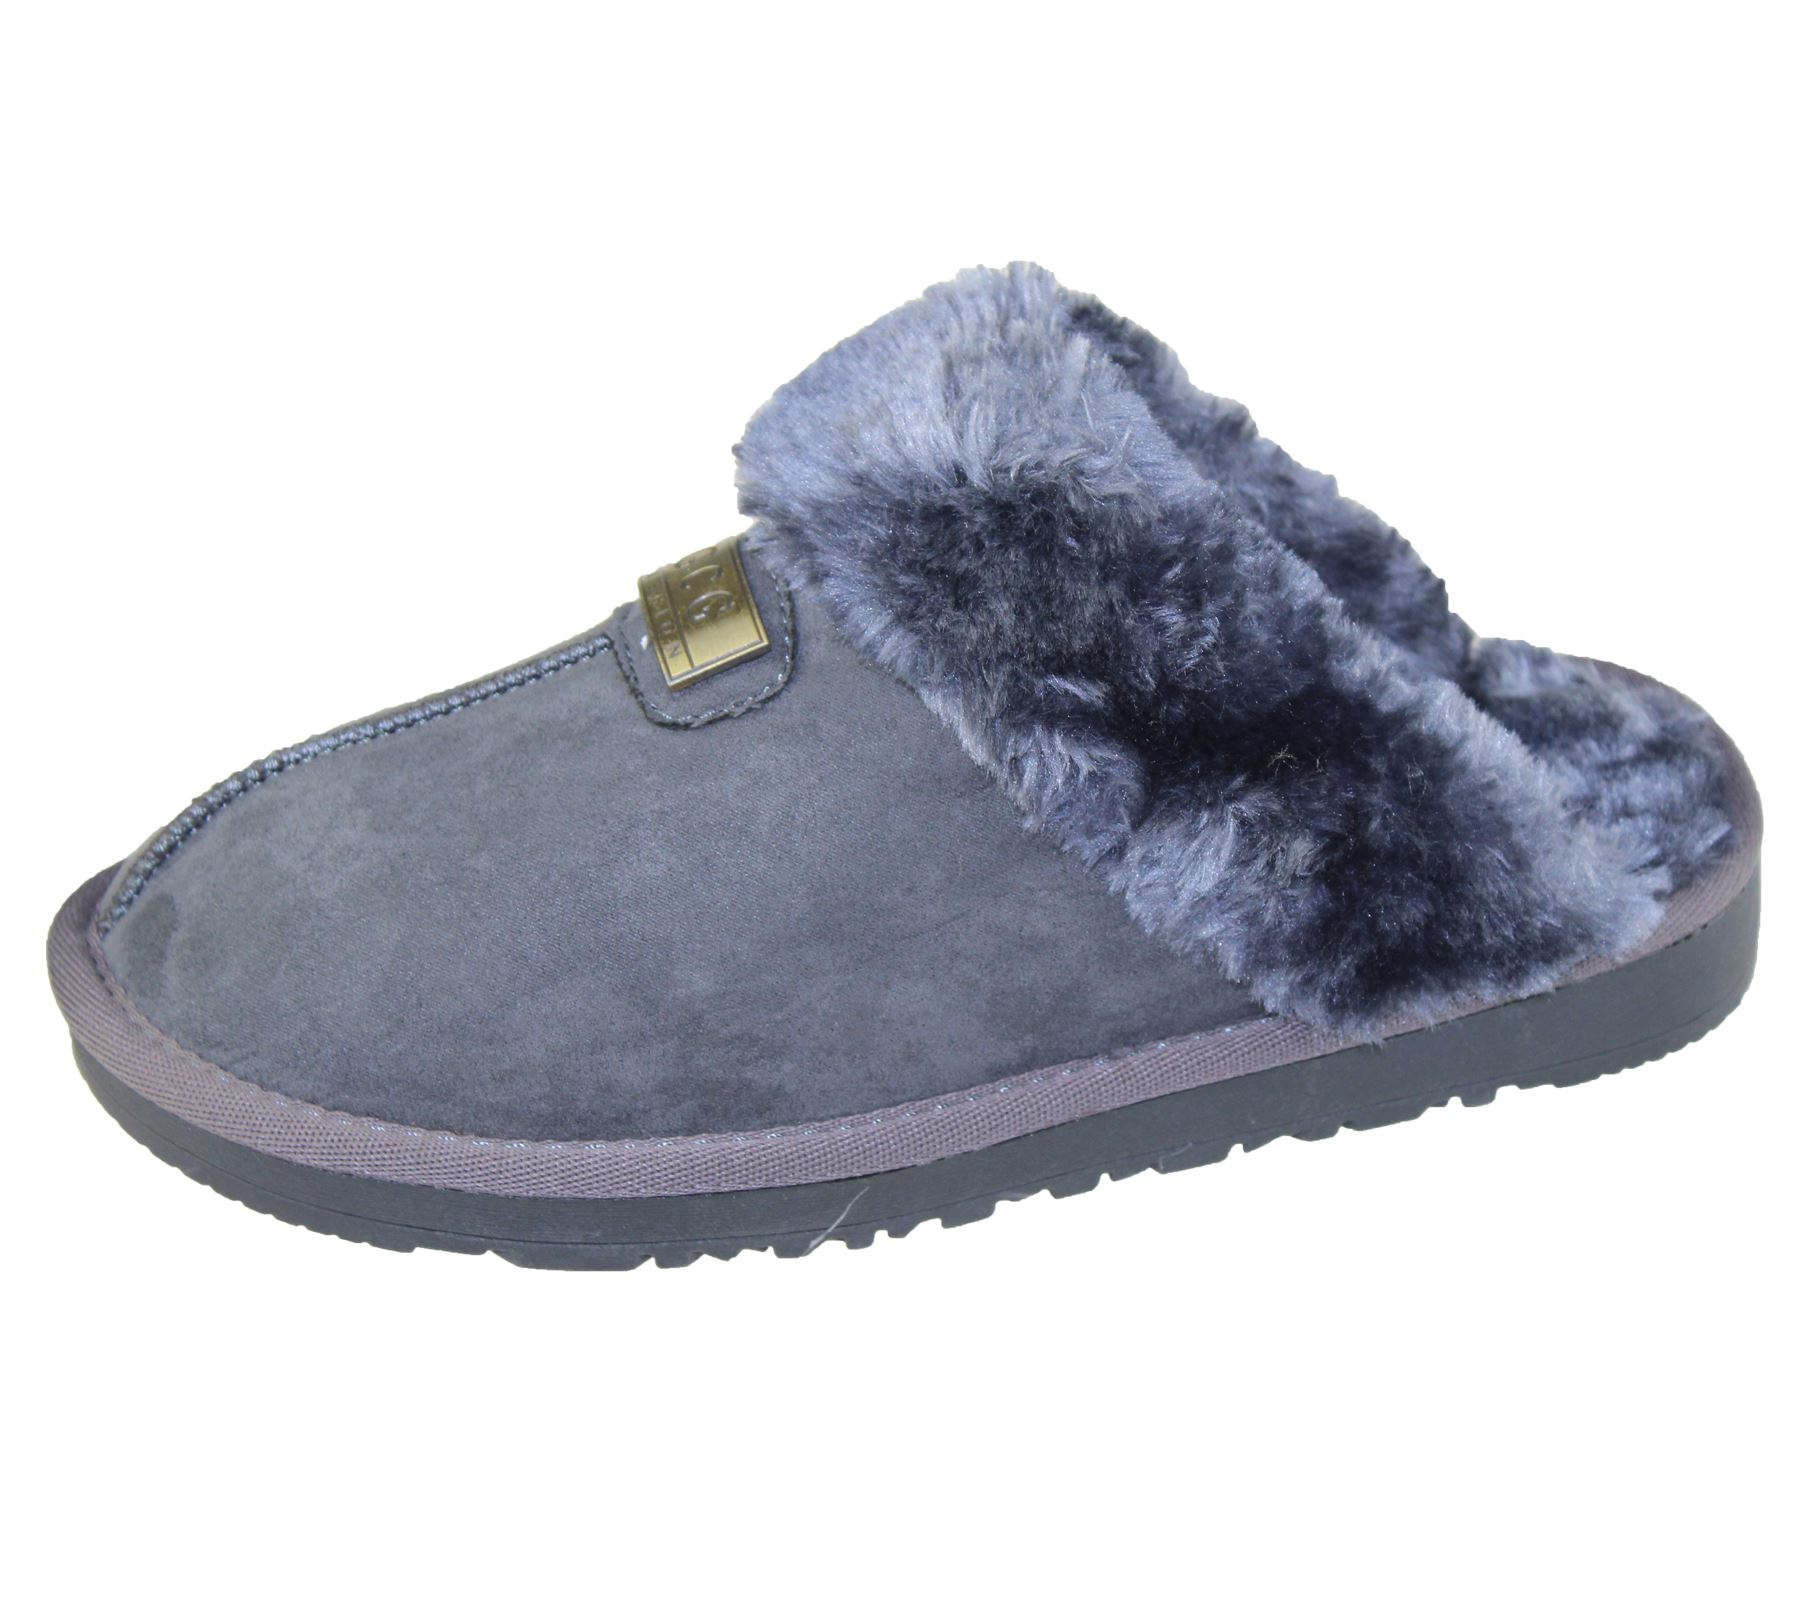 Womens-Fur-Lined-Slippers-Ladies-Mules-Non-Slip-Rubber-Sole-Shoes miniatura 33